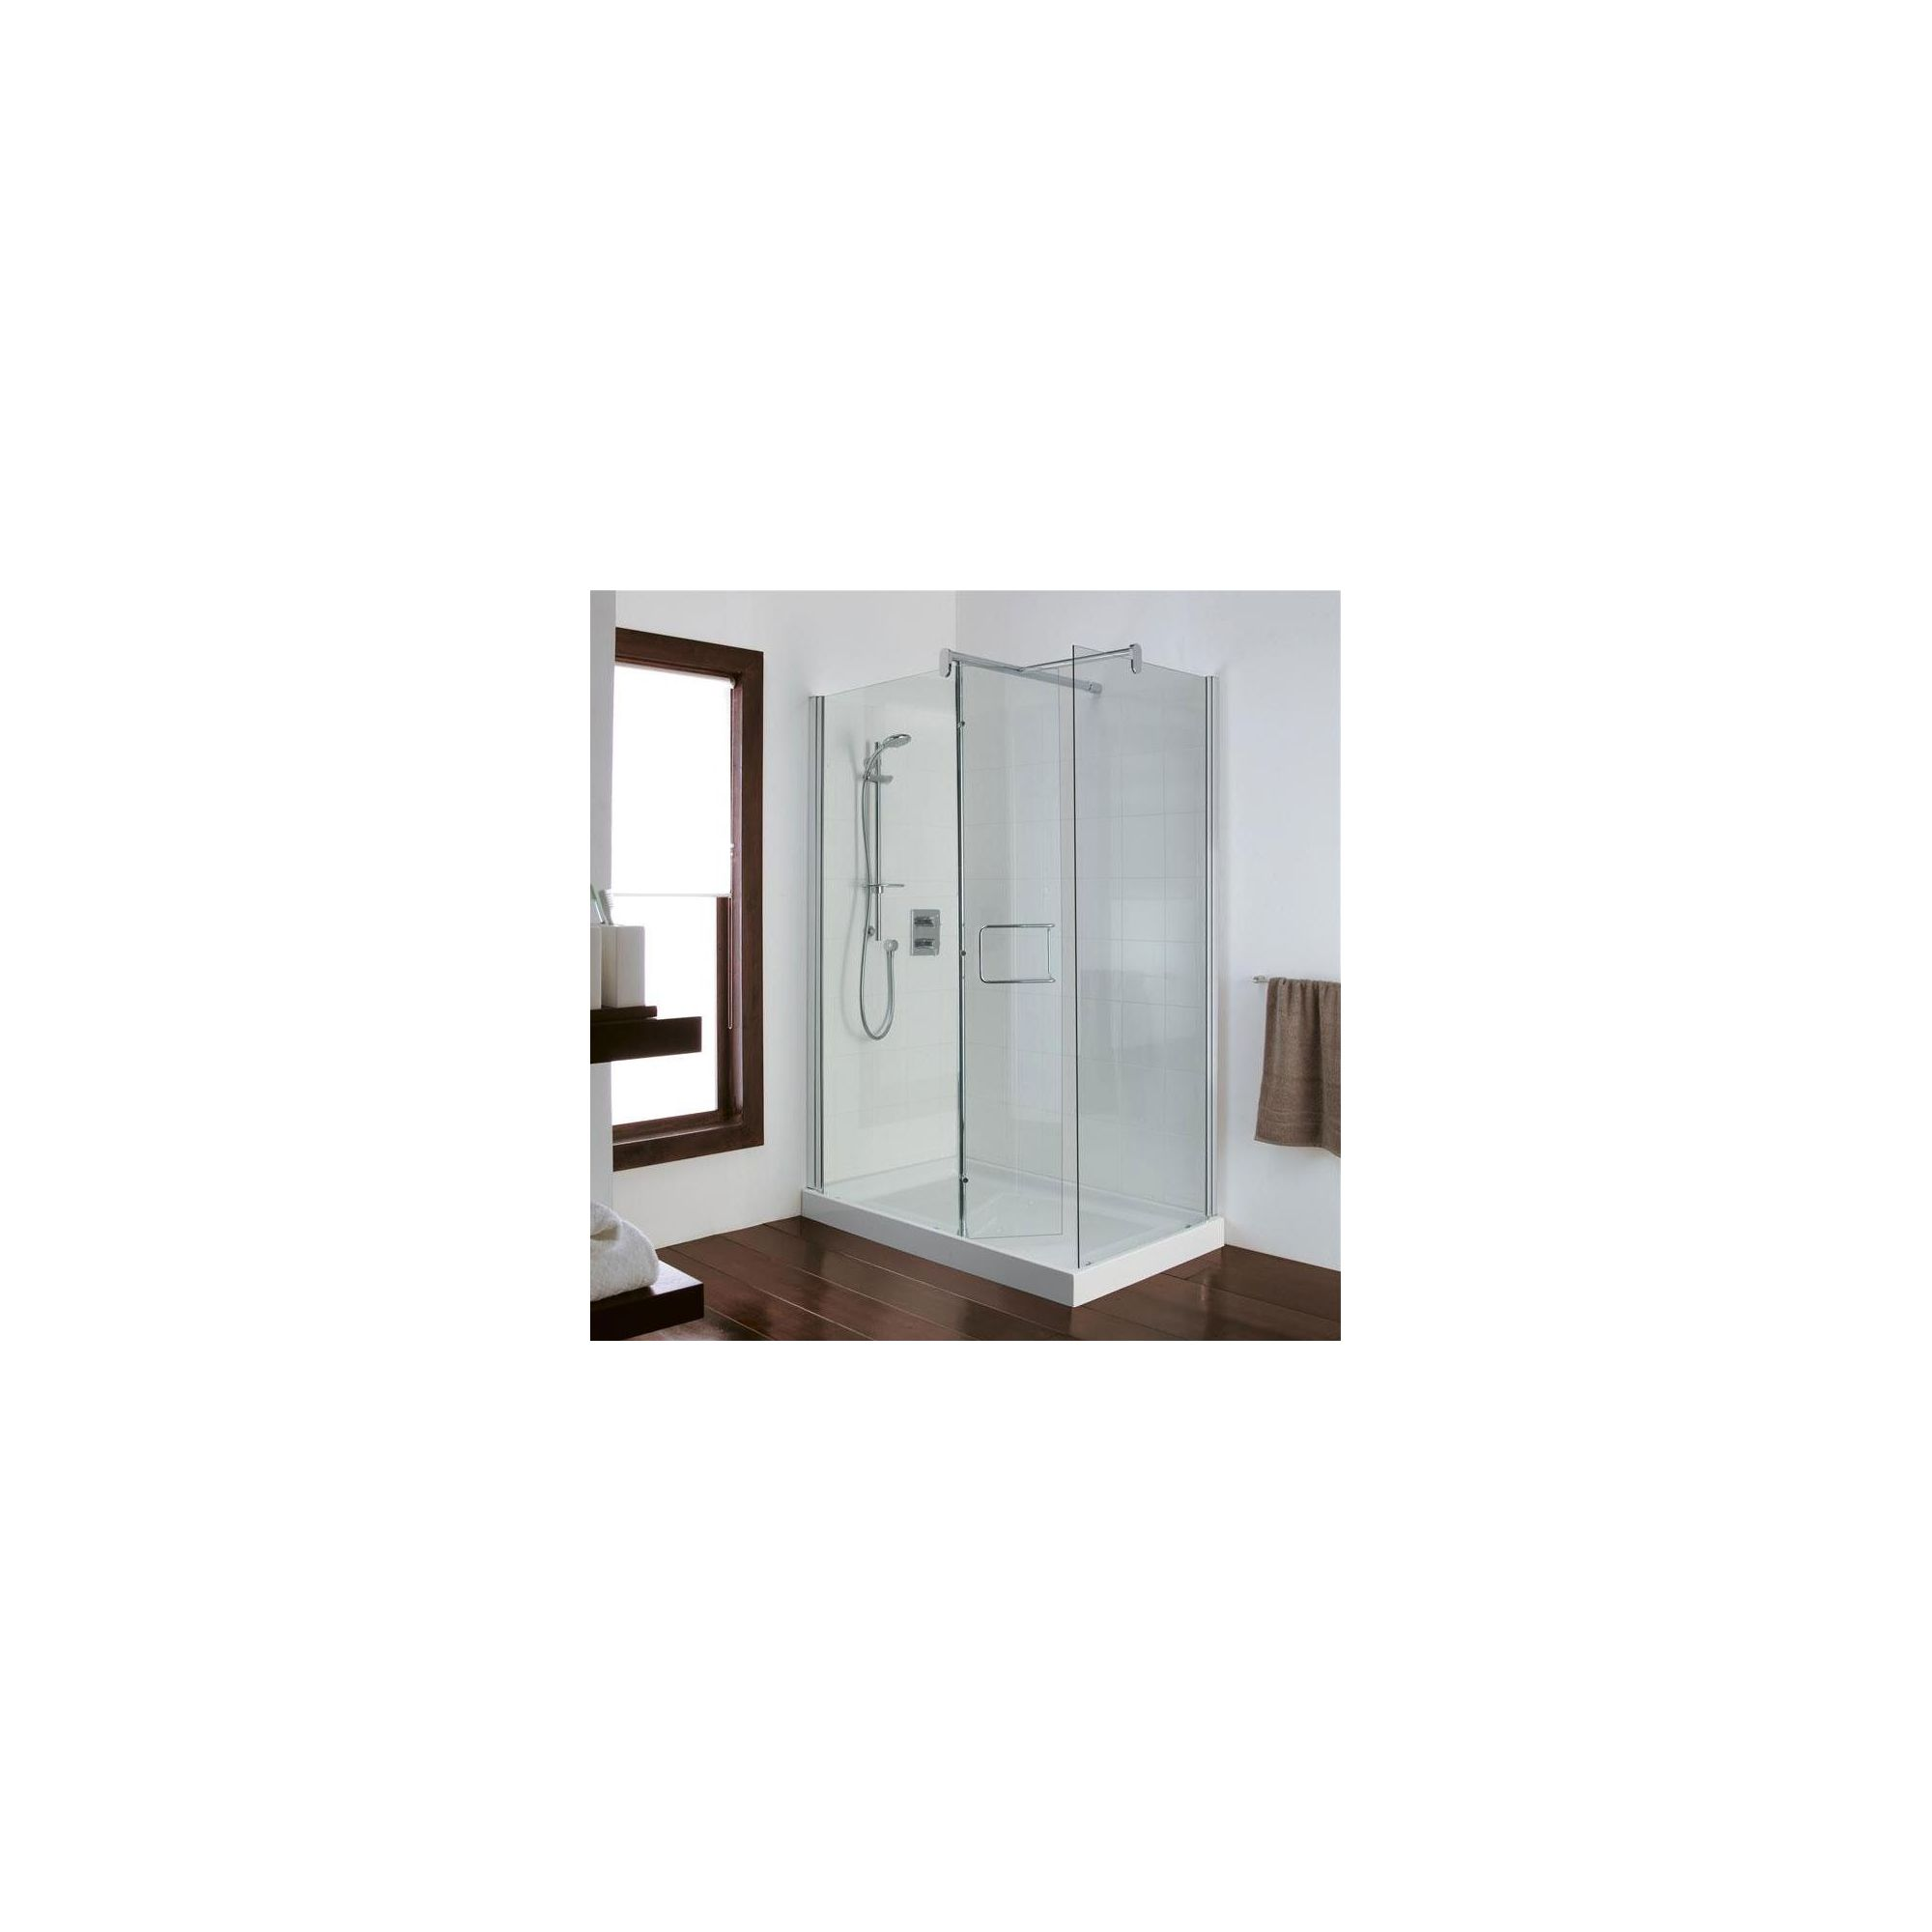 Ideal Standard Serenis Corner 90 Degree Shower Enclosure, excluding Fittings, 1200mm x 900mm, Low Profile Tray, Left Handed at Tesco Direct